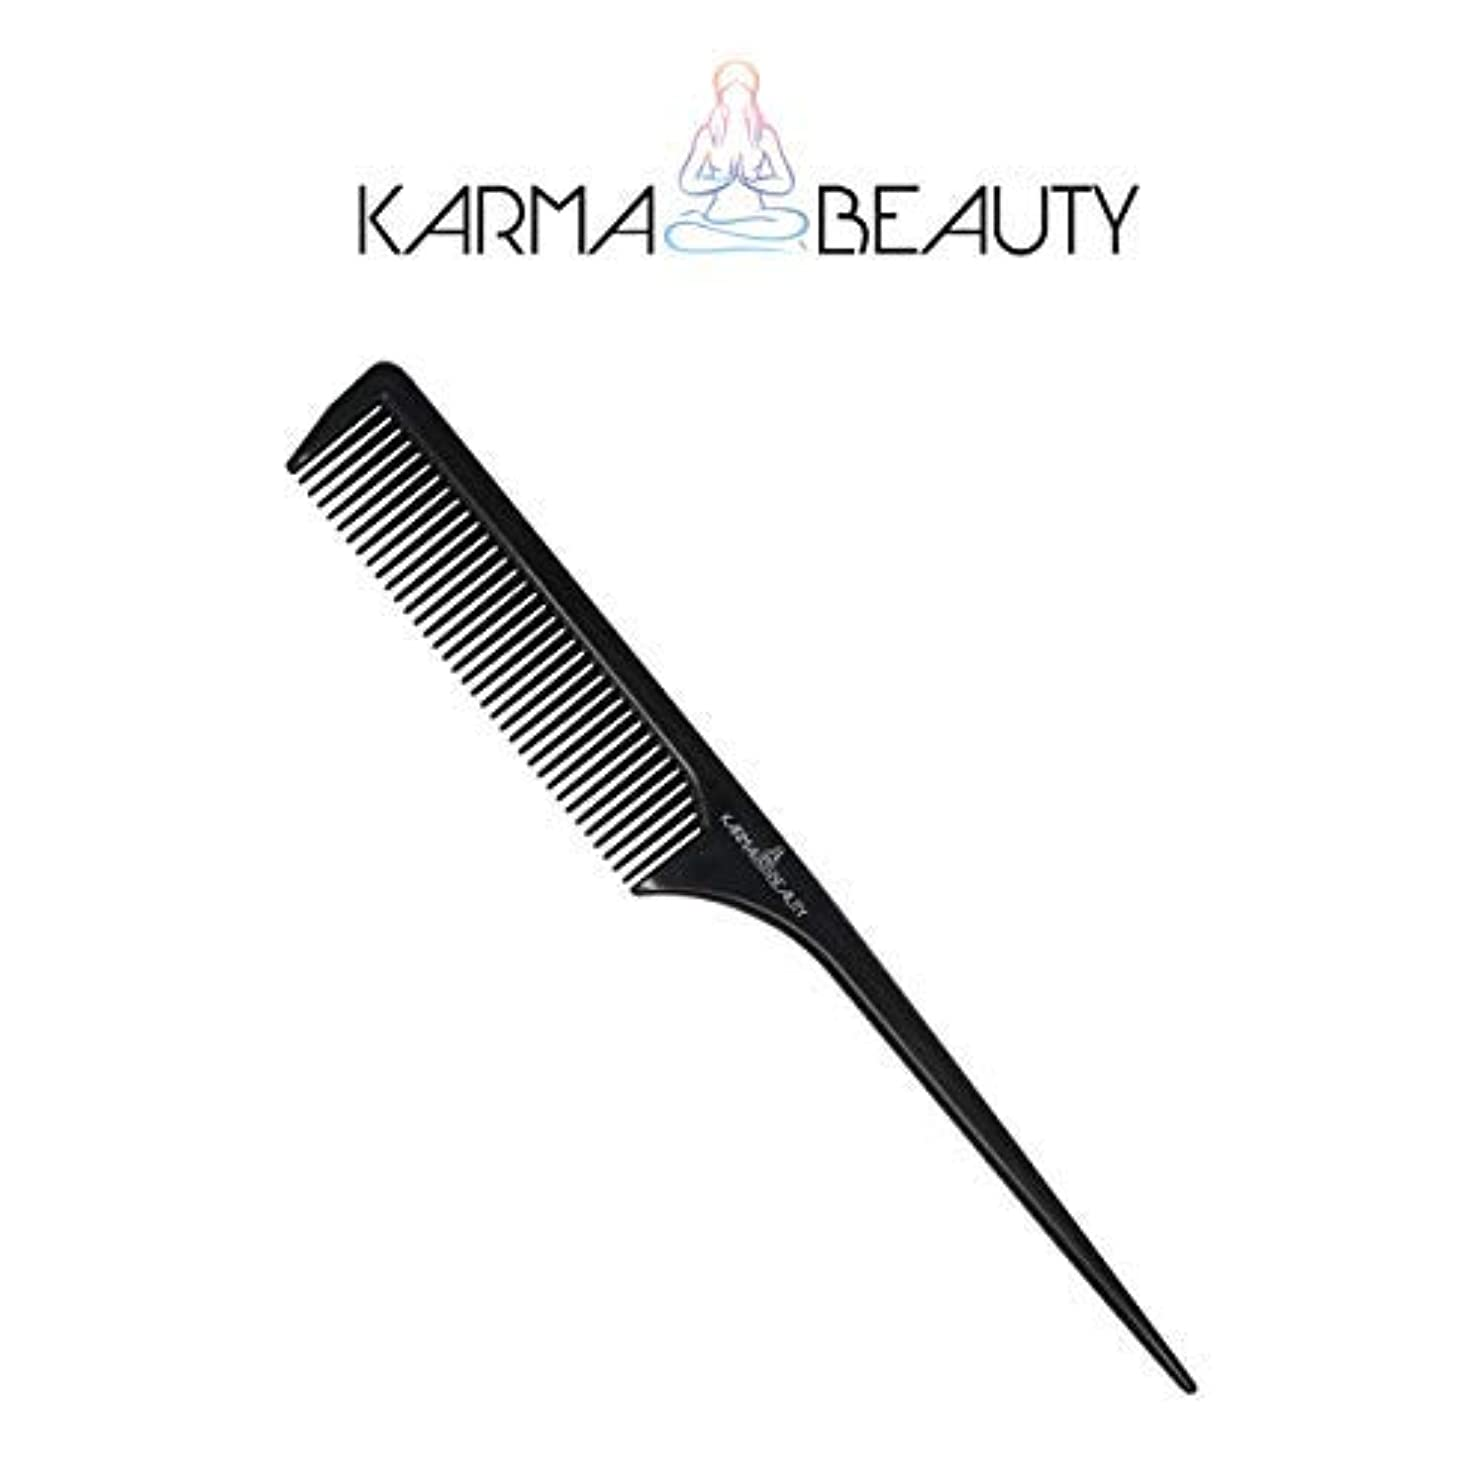 側不器用切り下げTail Comb | Fine Tooth Hair Comb | Thin and Long Handle | Teasing Comb | For All Hair Type | Karma Beauty | (Black...